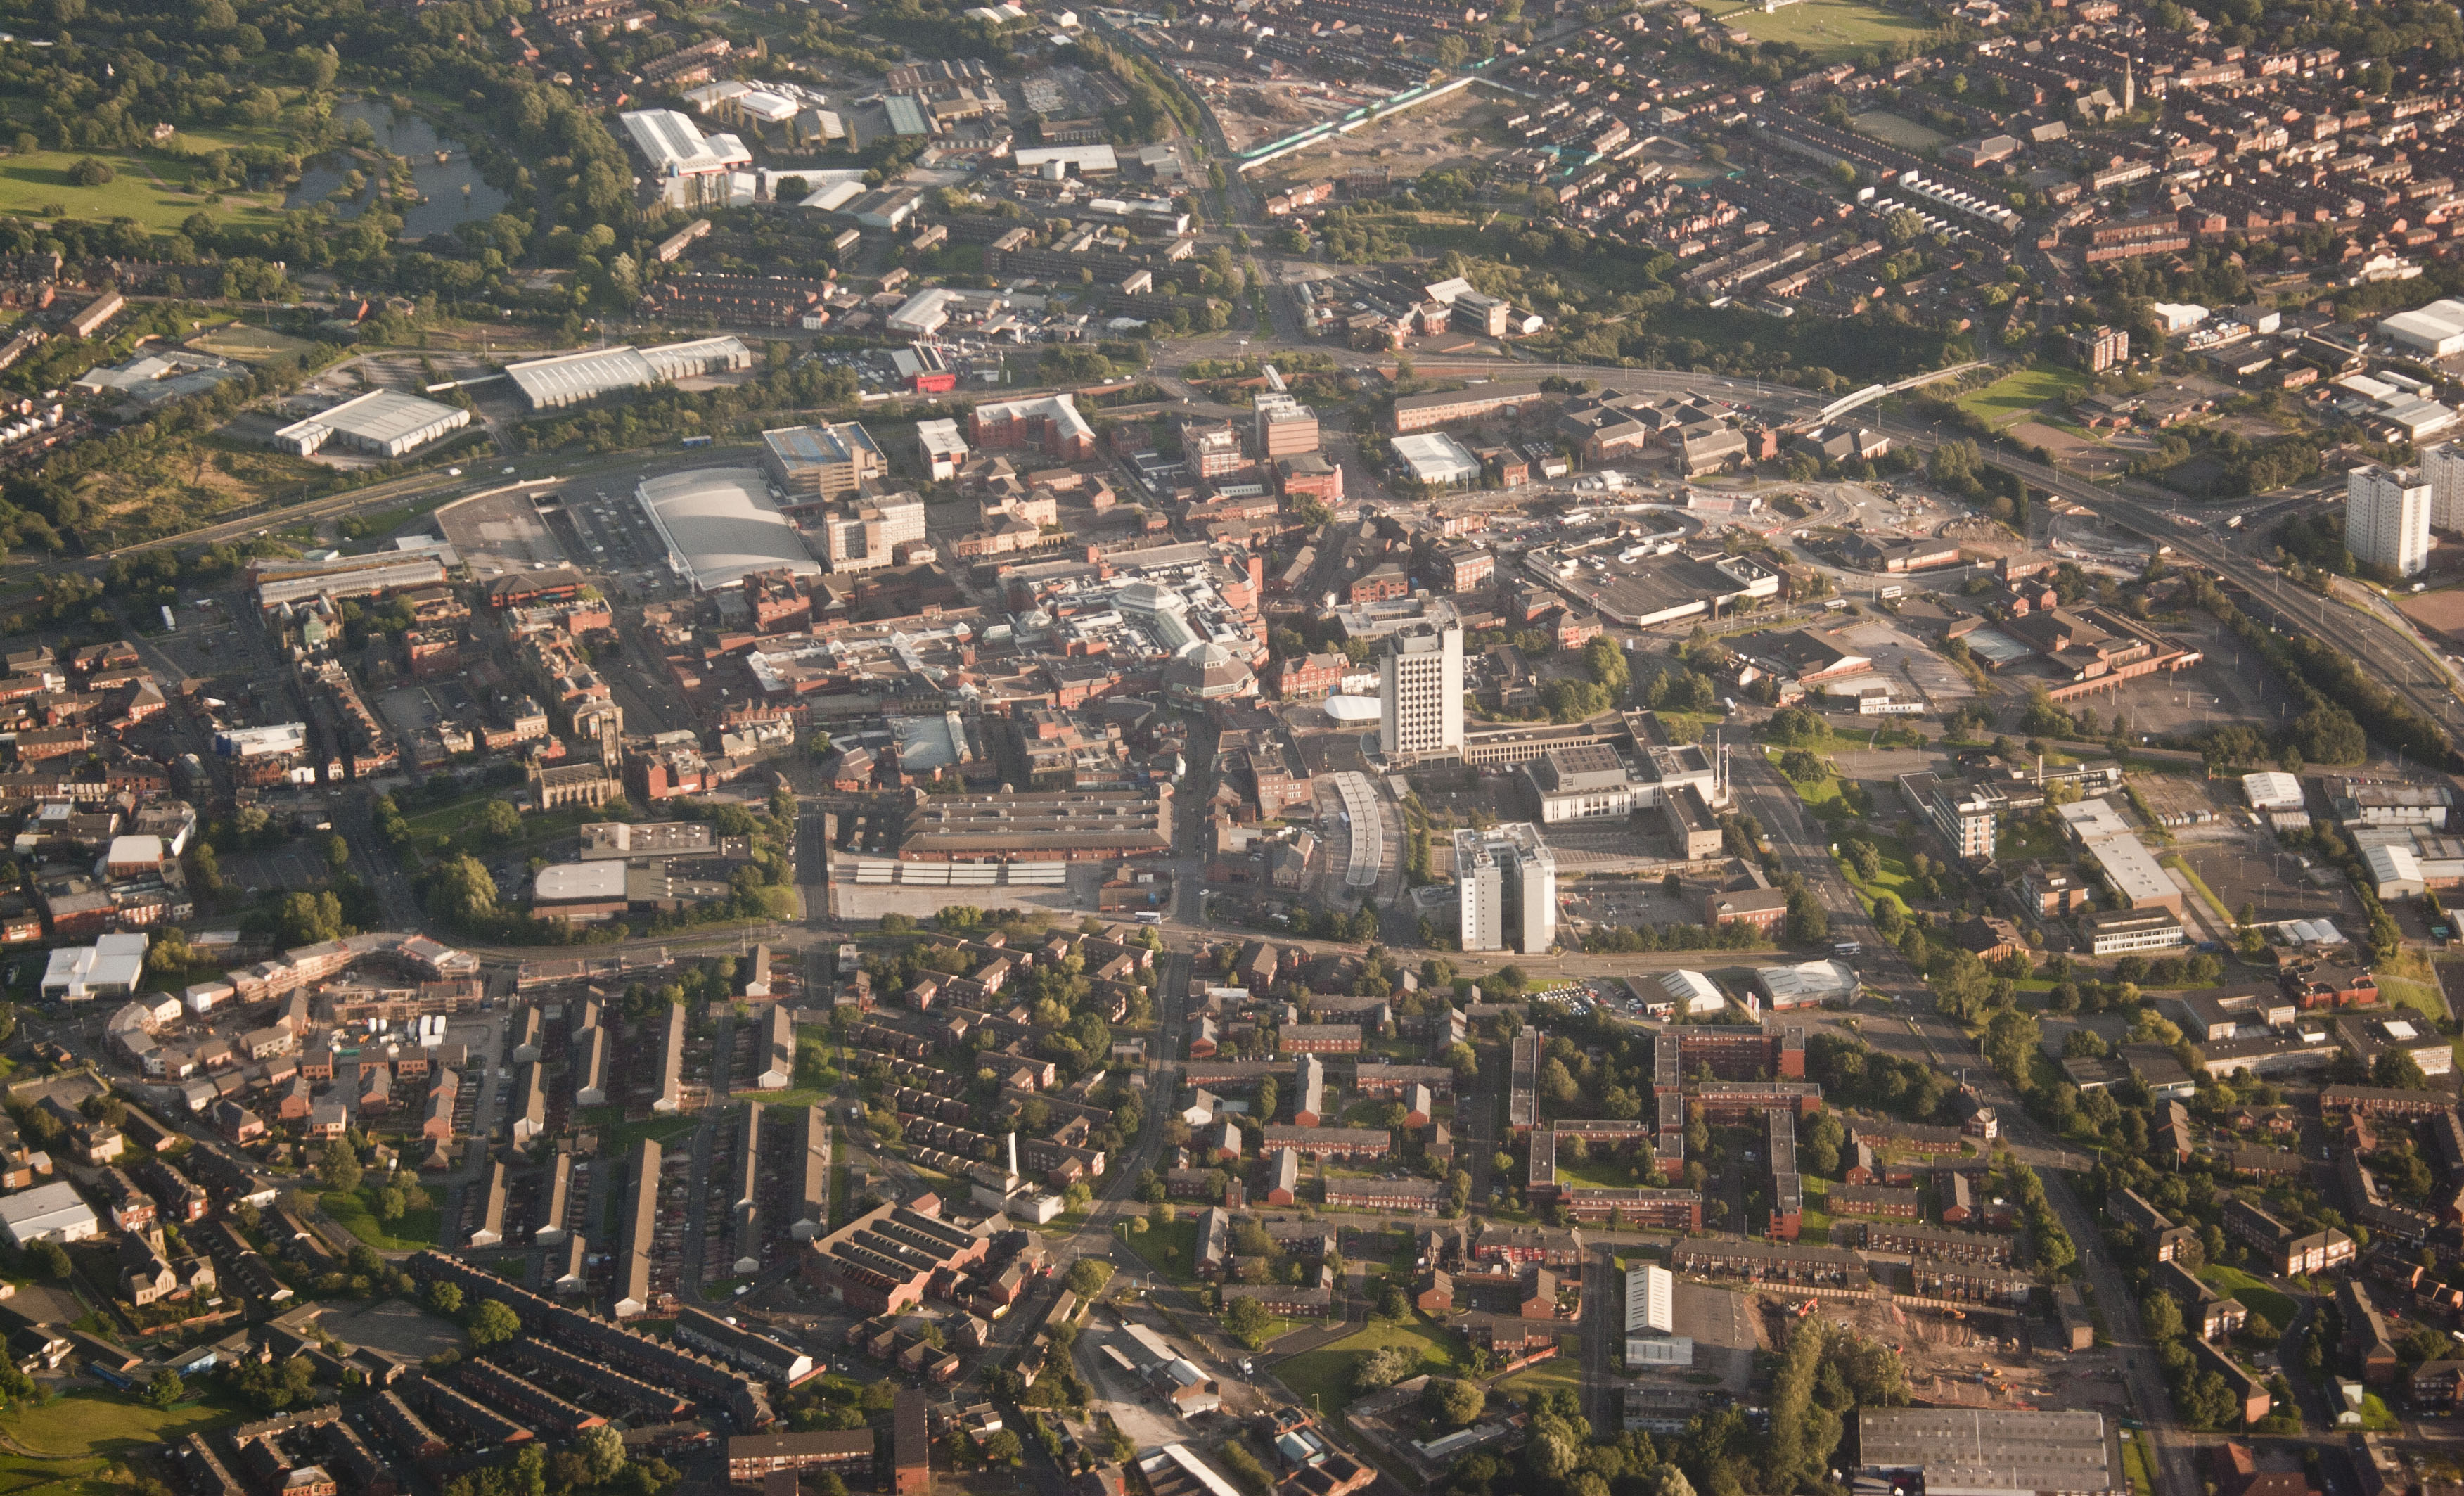 an image of Oldham town centre from the sky